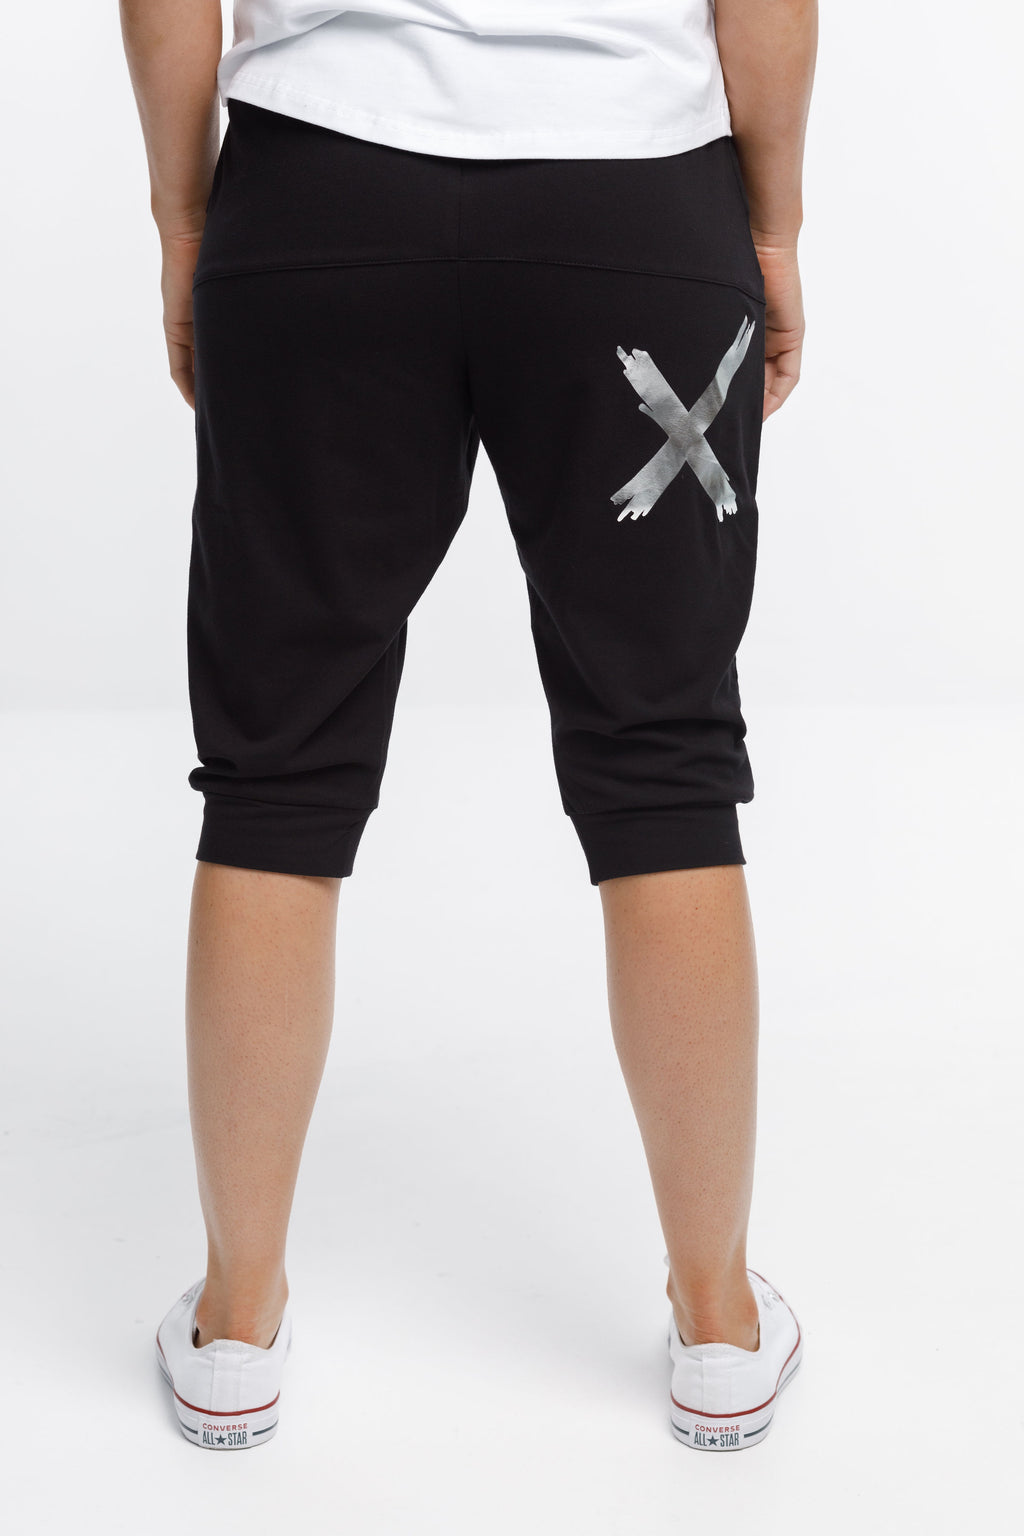 3/4 APARTMENT PANTS - Black with Silver X